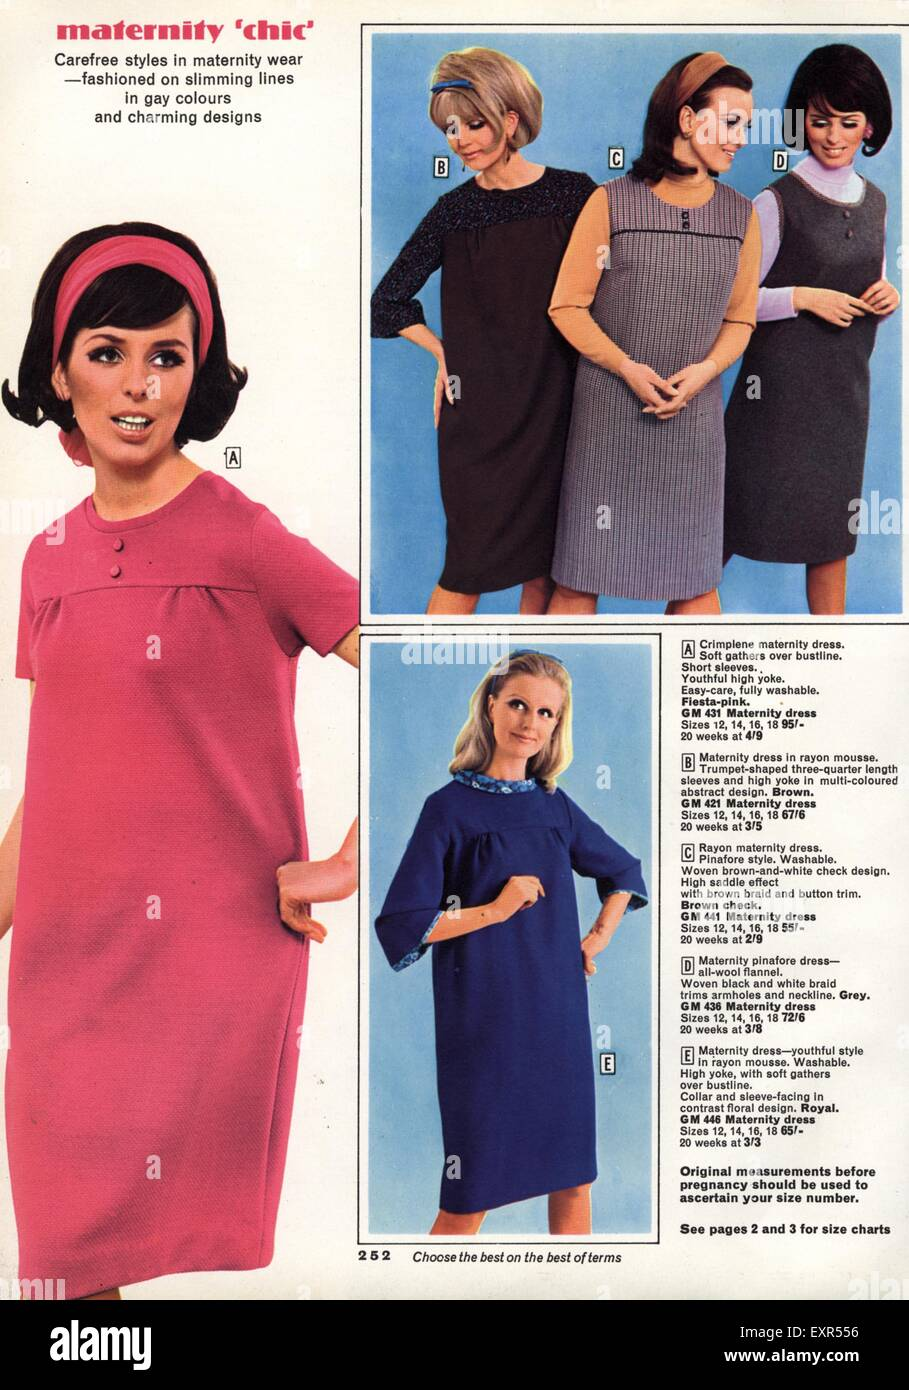 Size 16 maternity dresses choice image braidsmaid dress 1960s uk maternity clothes catalogue brochure plate stock photo 1960s uk maternity clothes catalogue brochure plate ombrellifo Images